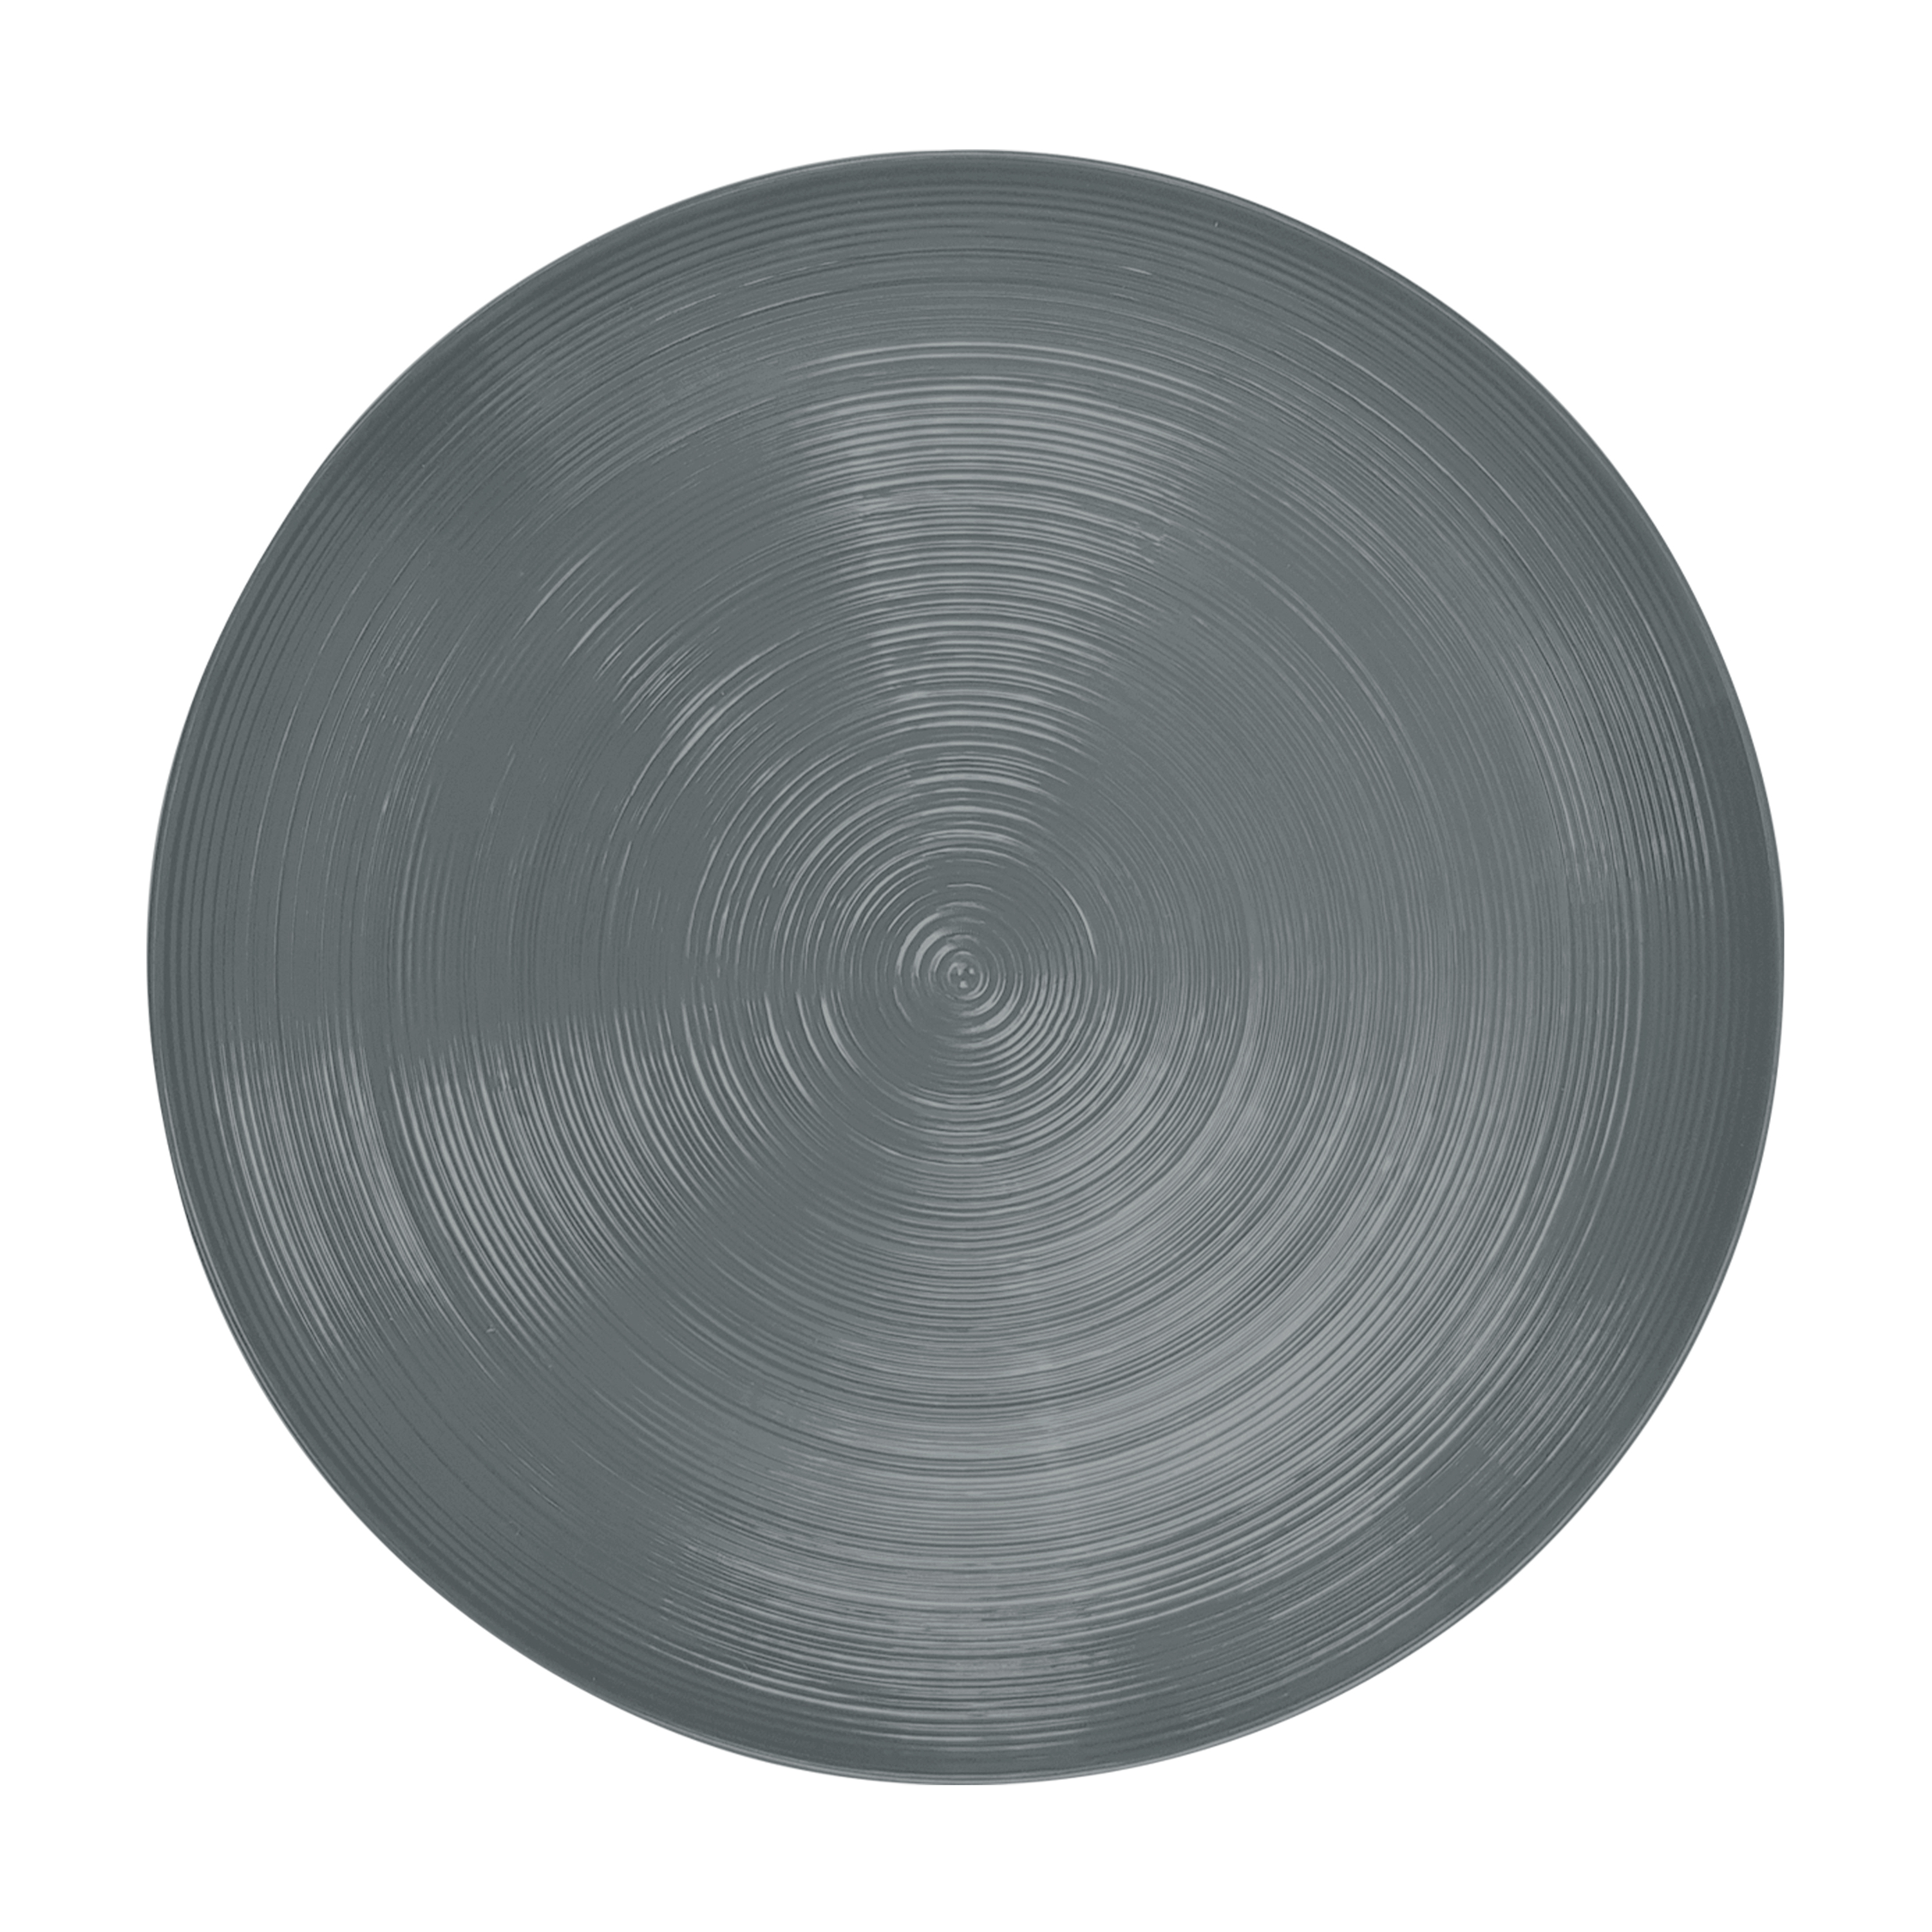 American Conventional Plate & Bowl Sets, Charcoal, 12-piece set slideshow image 5